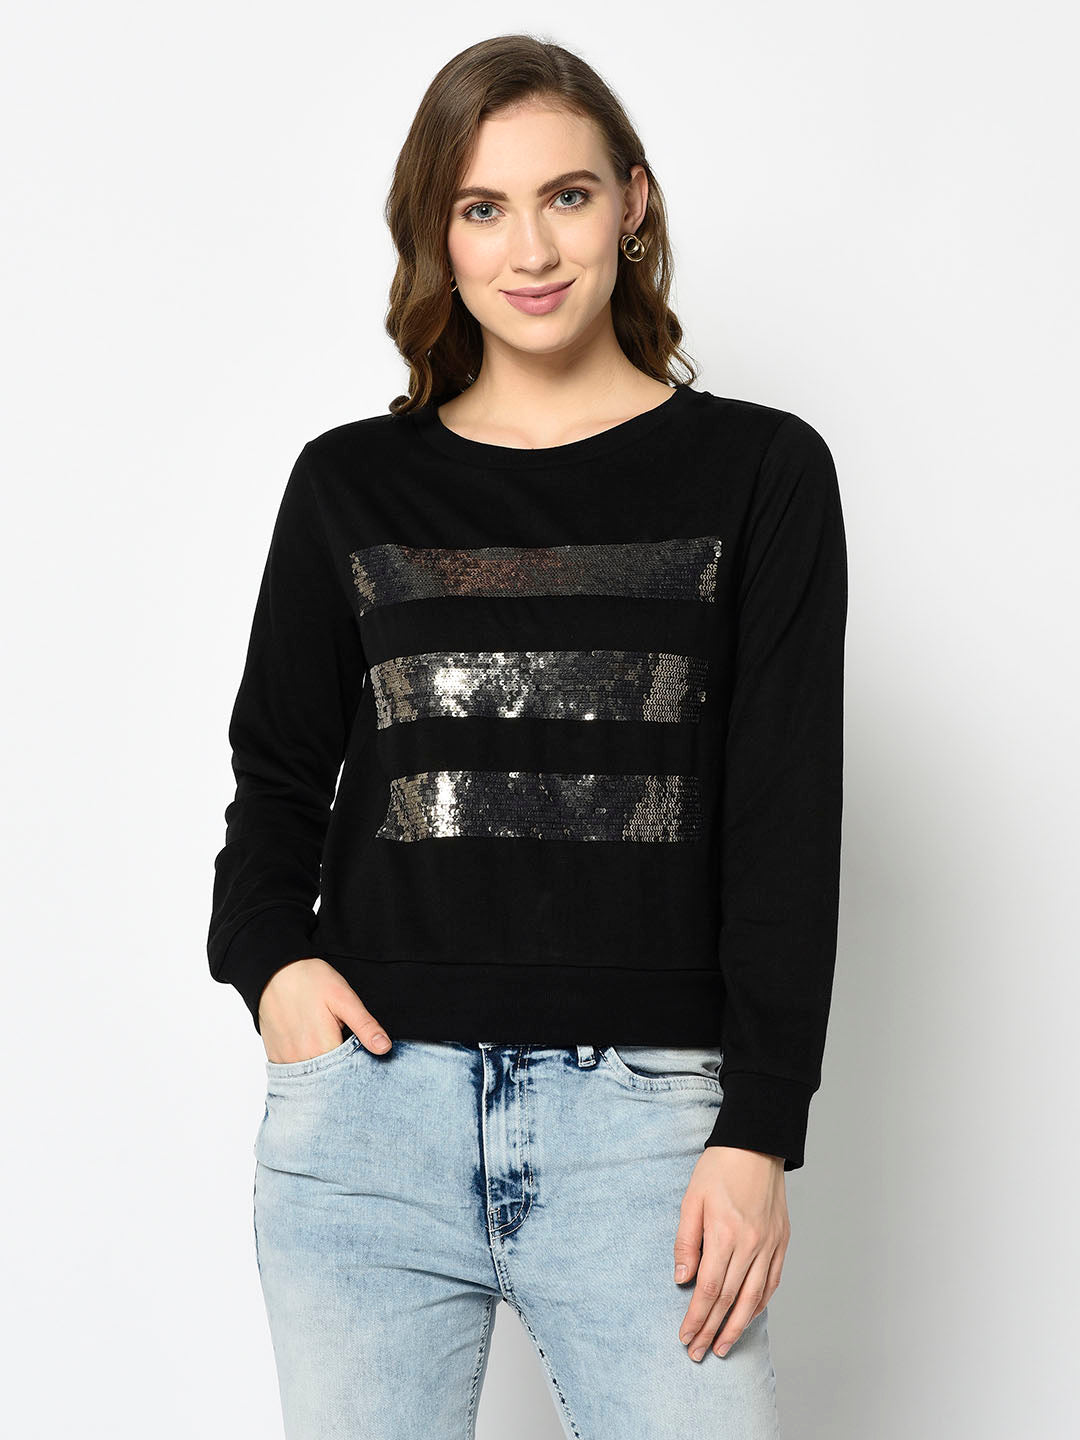 Black Sweatshirt with Dark Silver Sequences